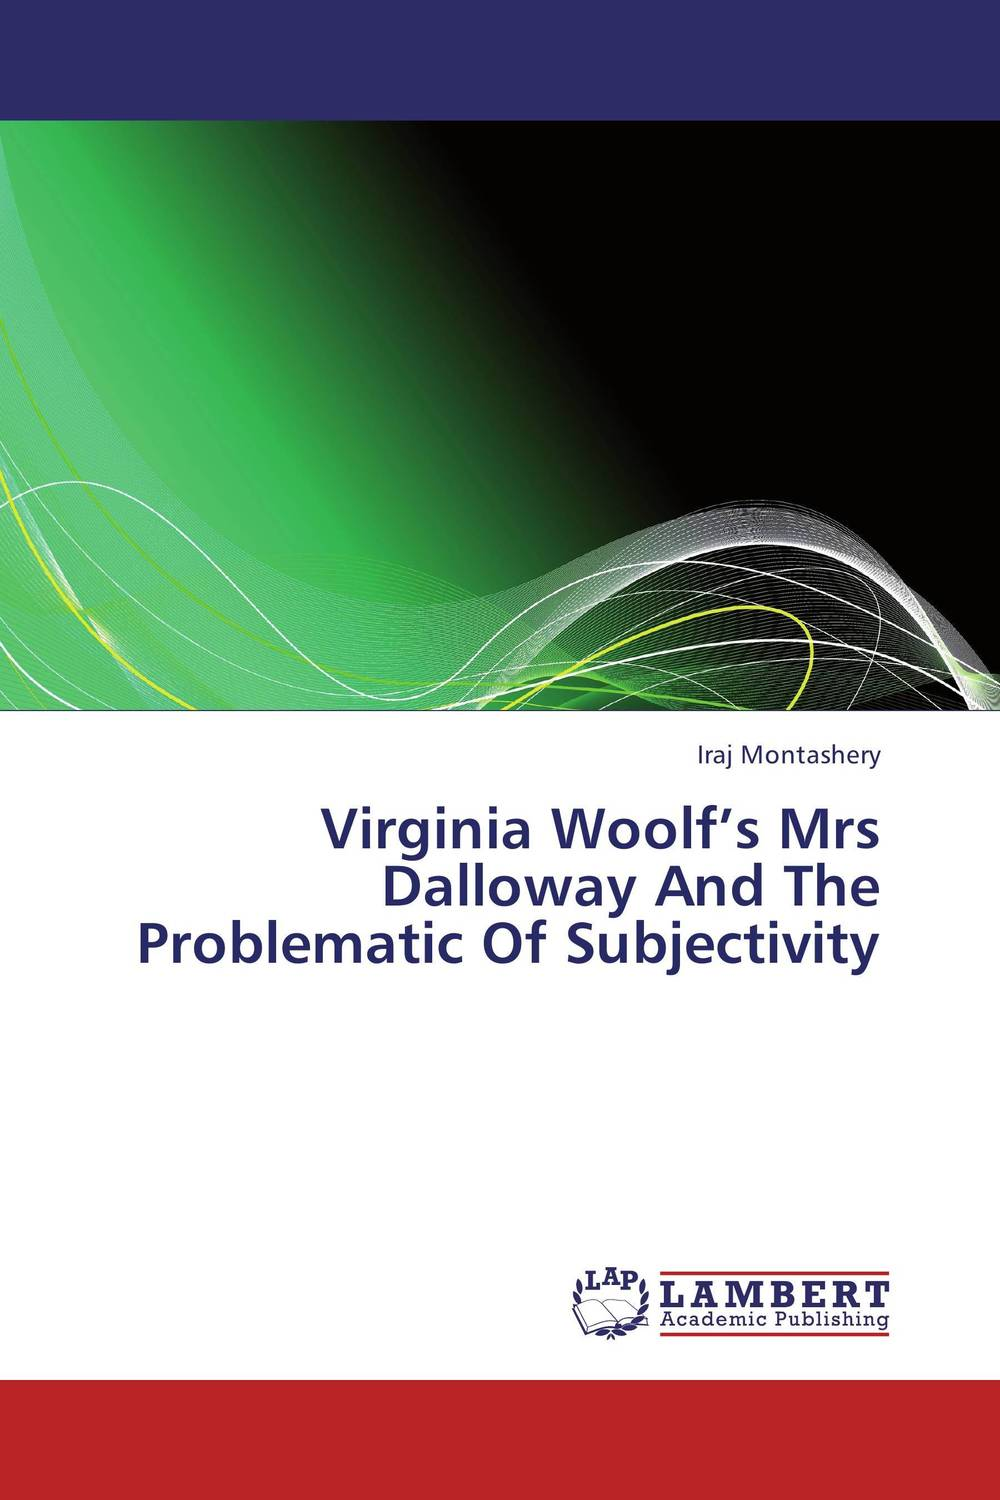 Virginia Woolf's Mrs Dalloway And The Problematic Of Subjectivity emerging image of women in virginia woolf's novels